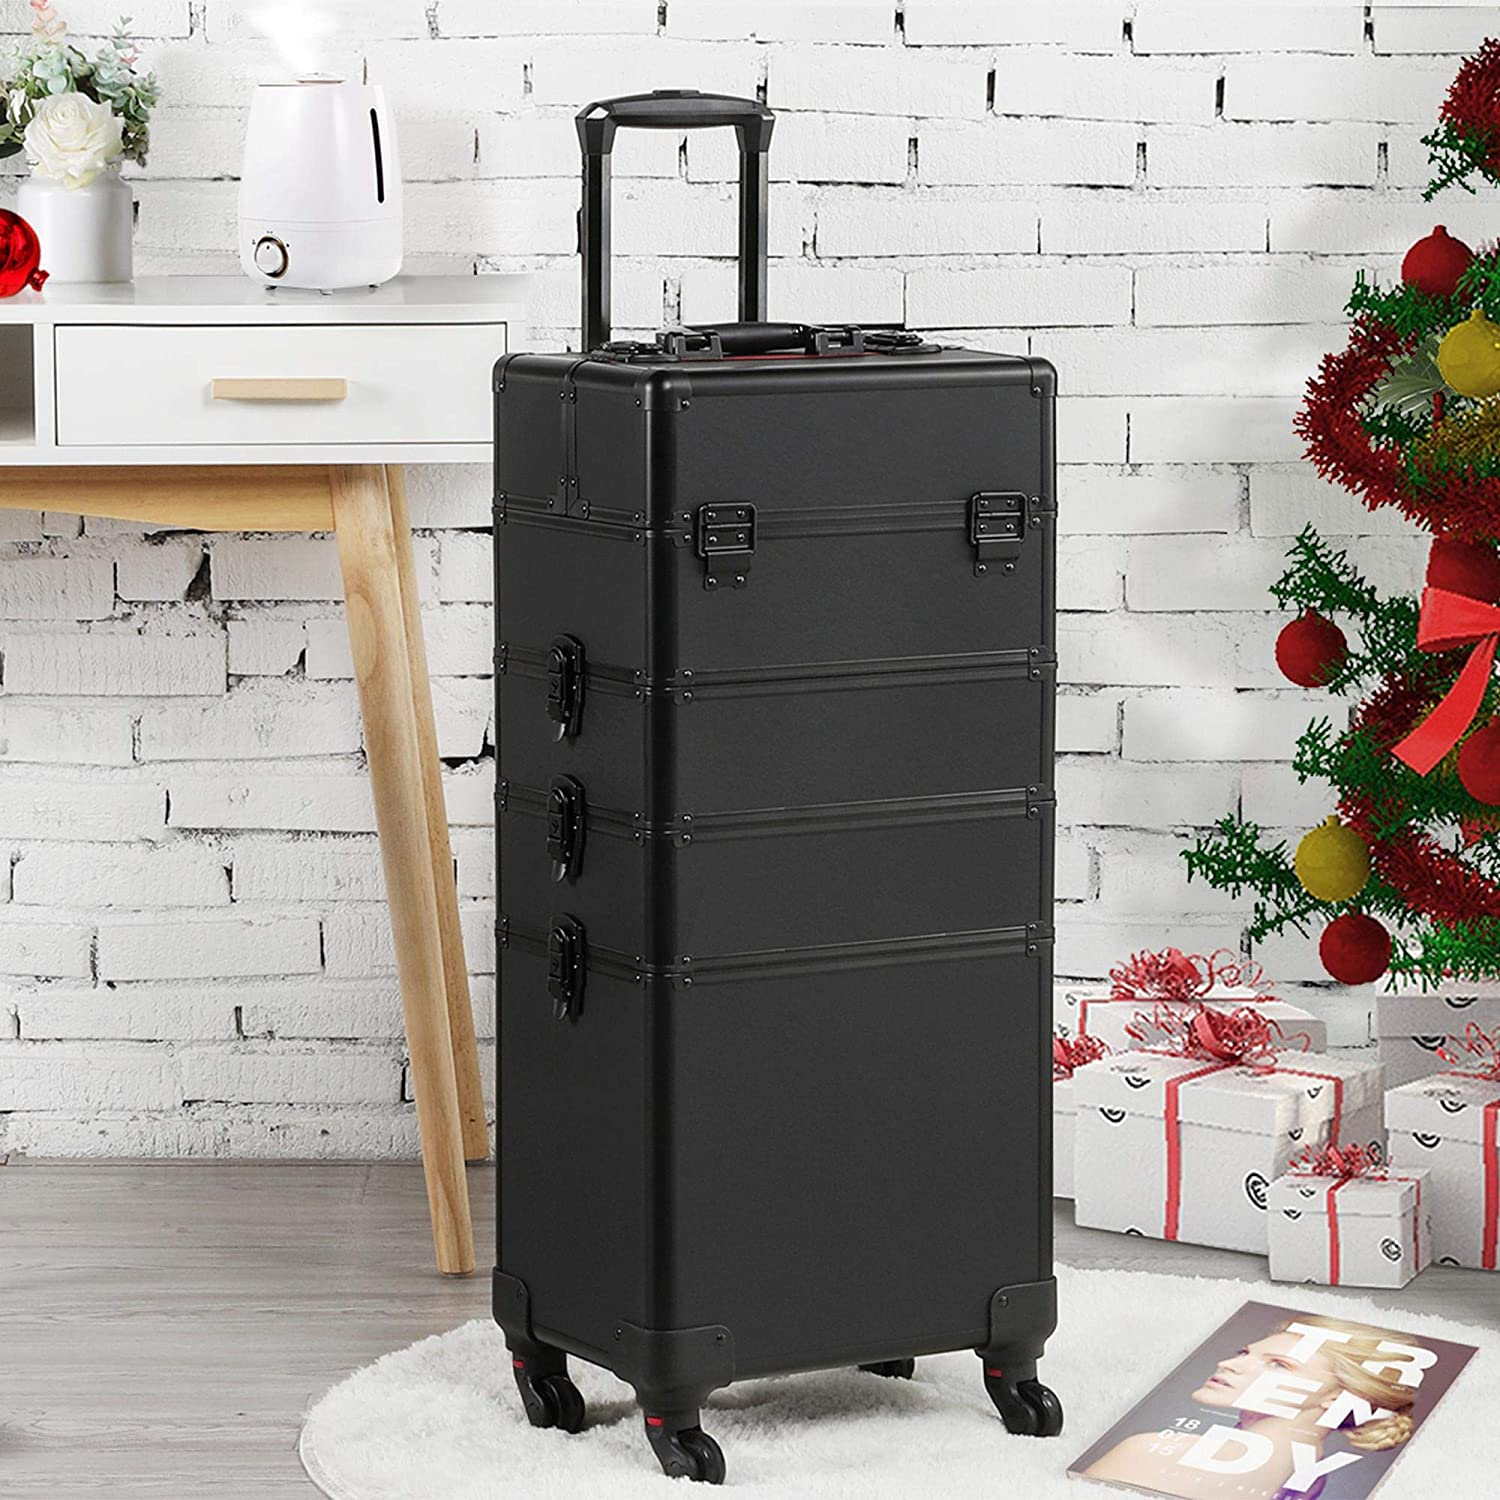 Tidy up, store your makeup at home or in the beauty salon with a trolley make-up case